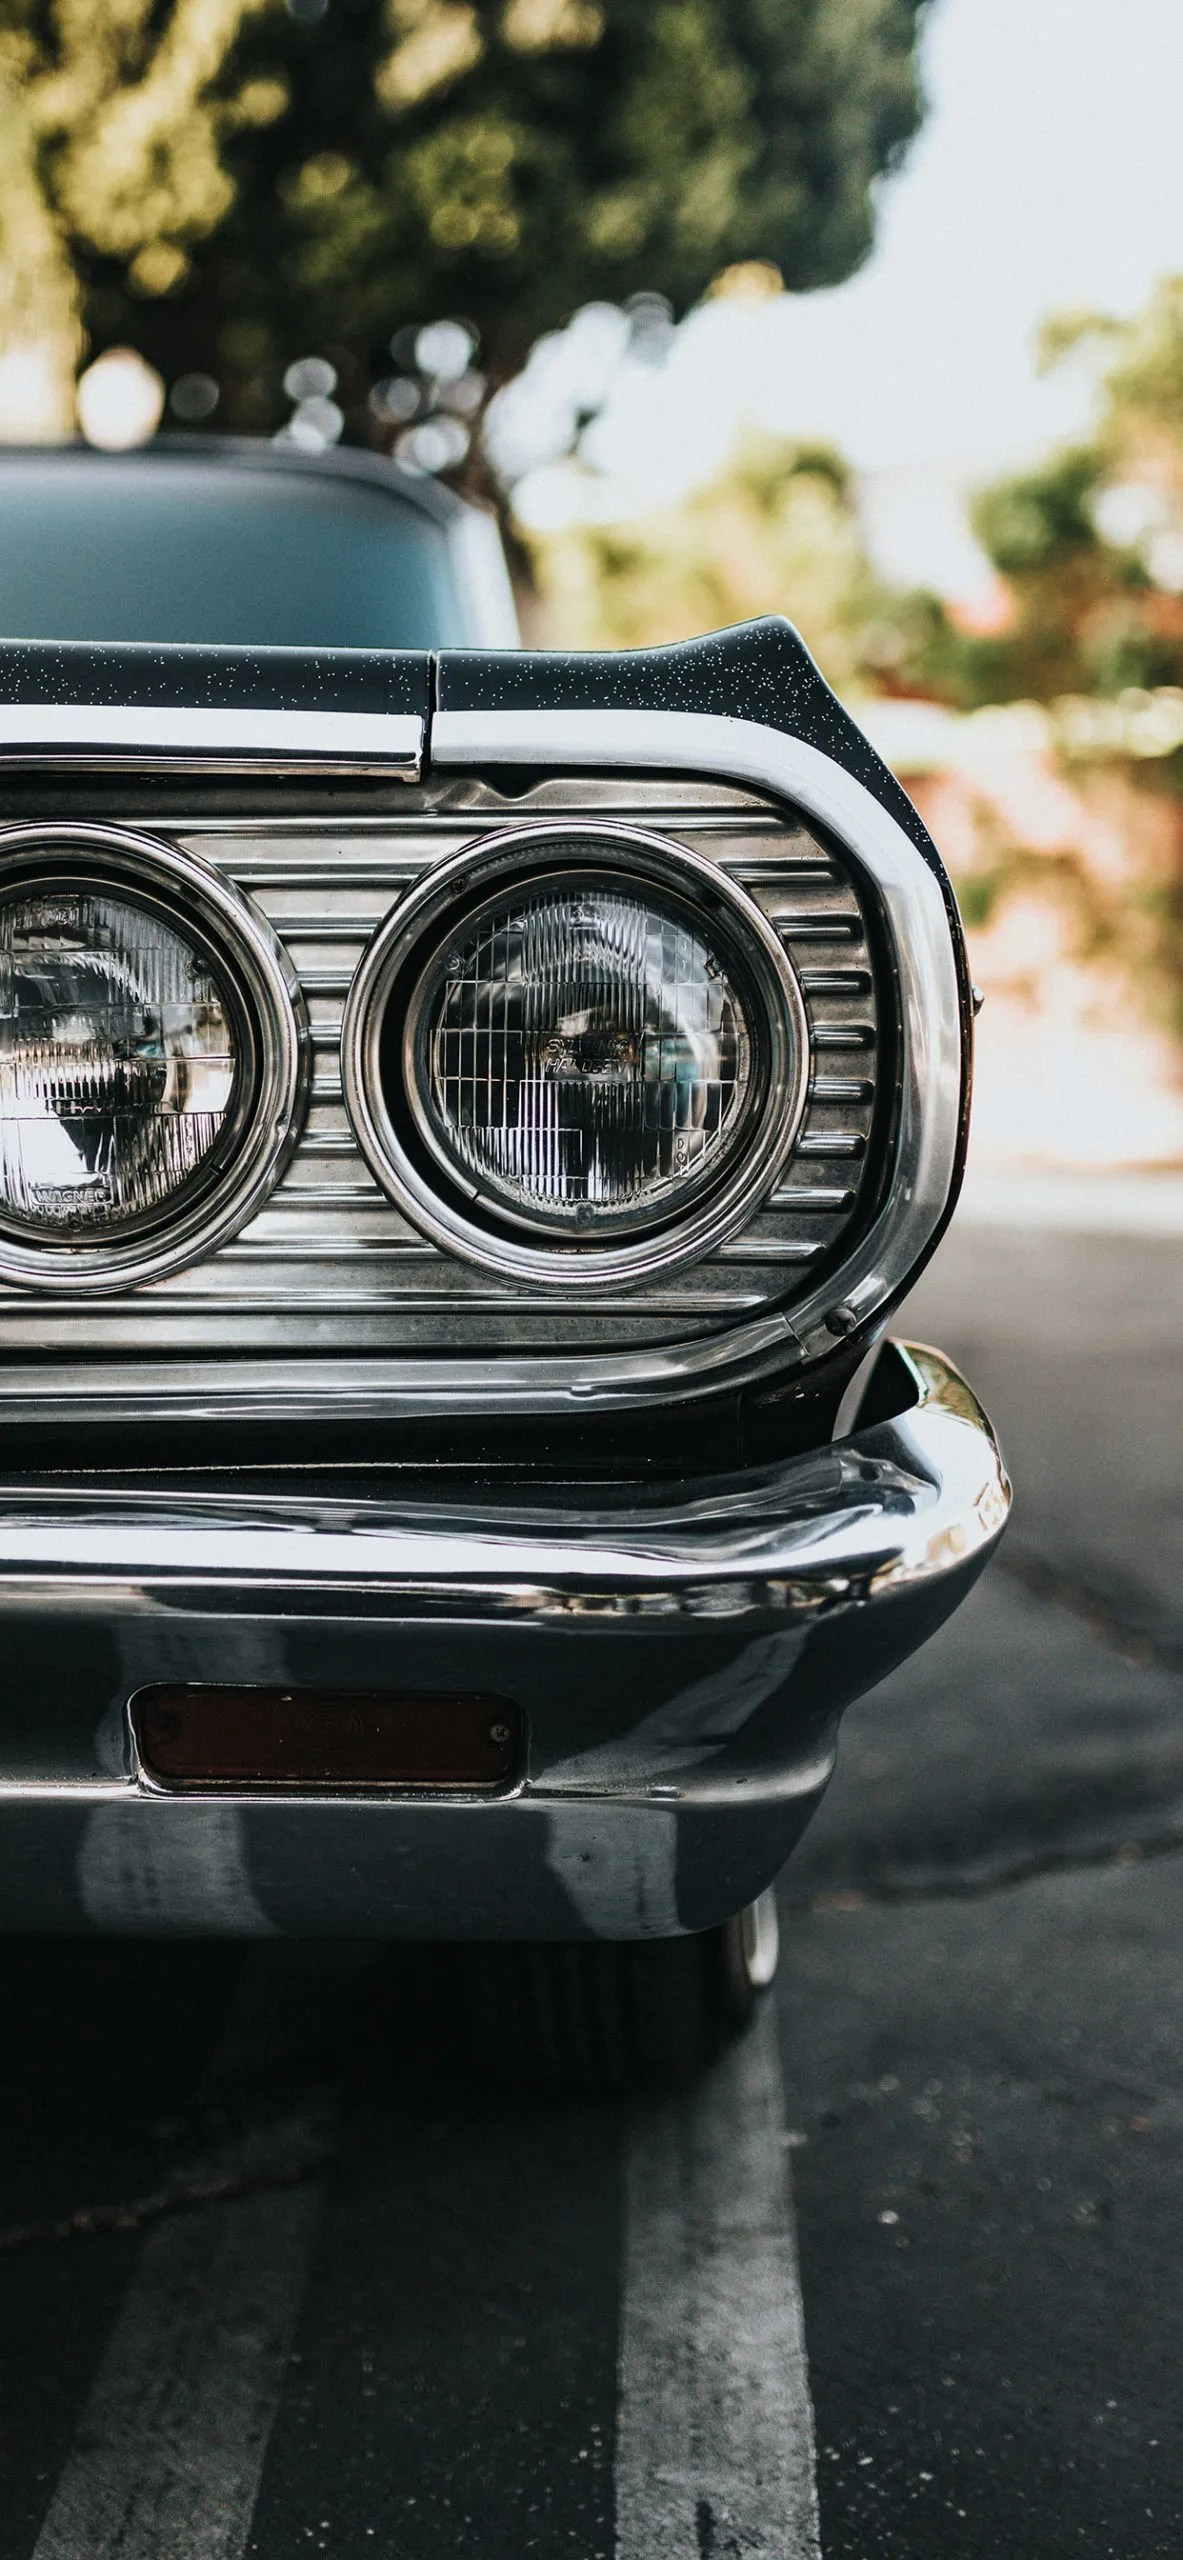 iphone wallpapers classic cars2 scaled Classic car